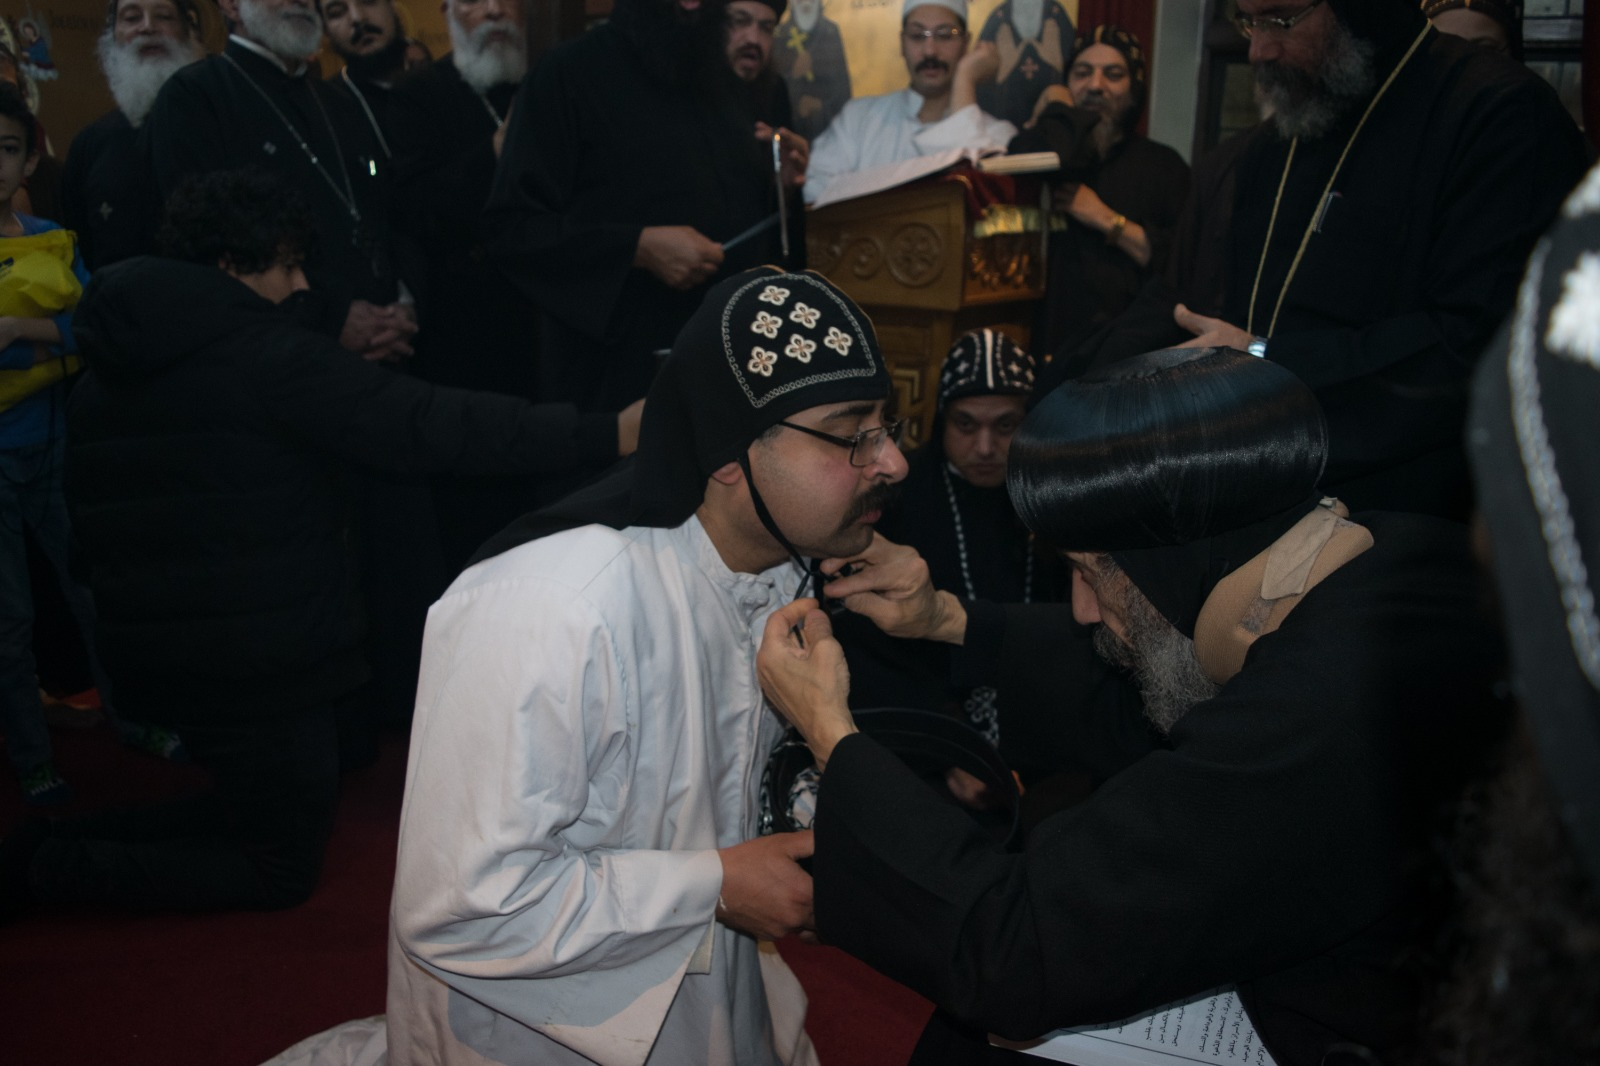 The-ordination-of-two-monks-at-St-Athanasius-Monastery04